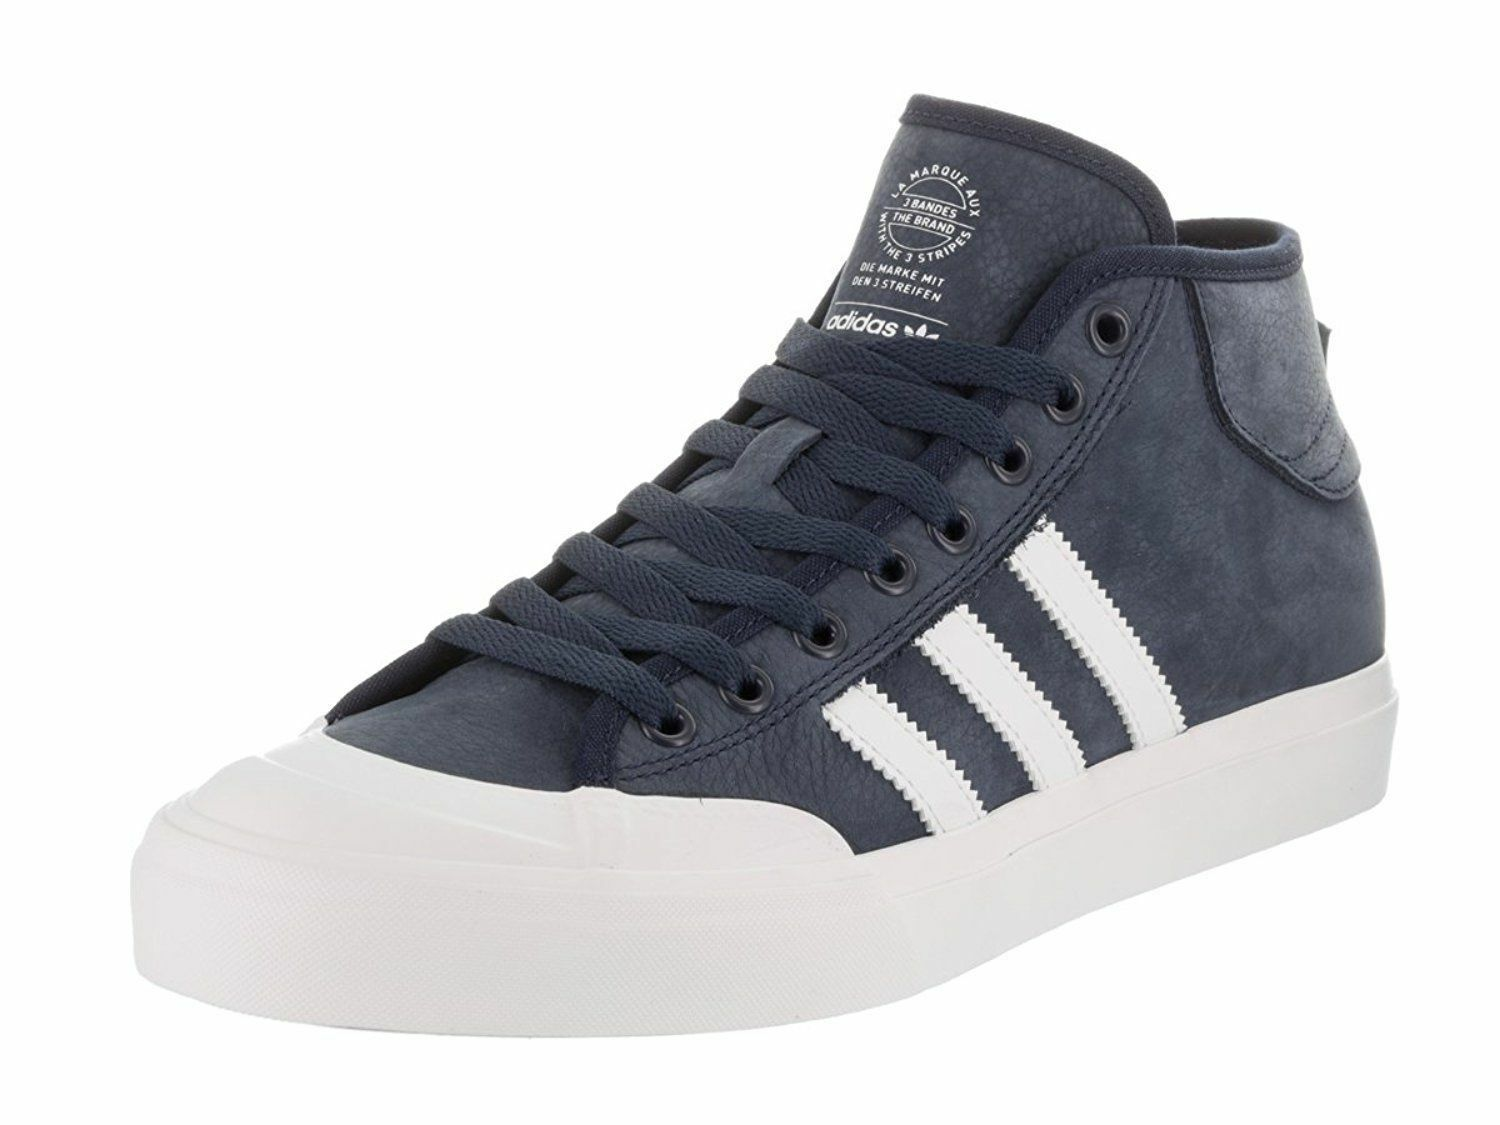 ADIDAS MATCHCOURT SKATE MID SNEAKERS Uomo SHOES NAVY/WHITE BY3203 SIZE 10.5 NEW